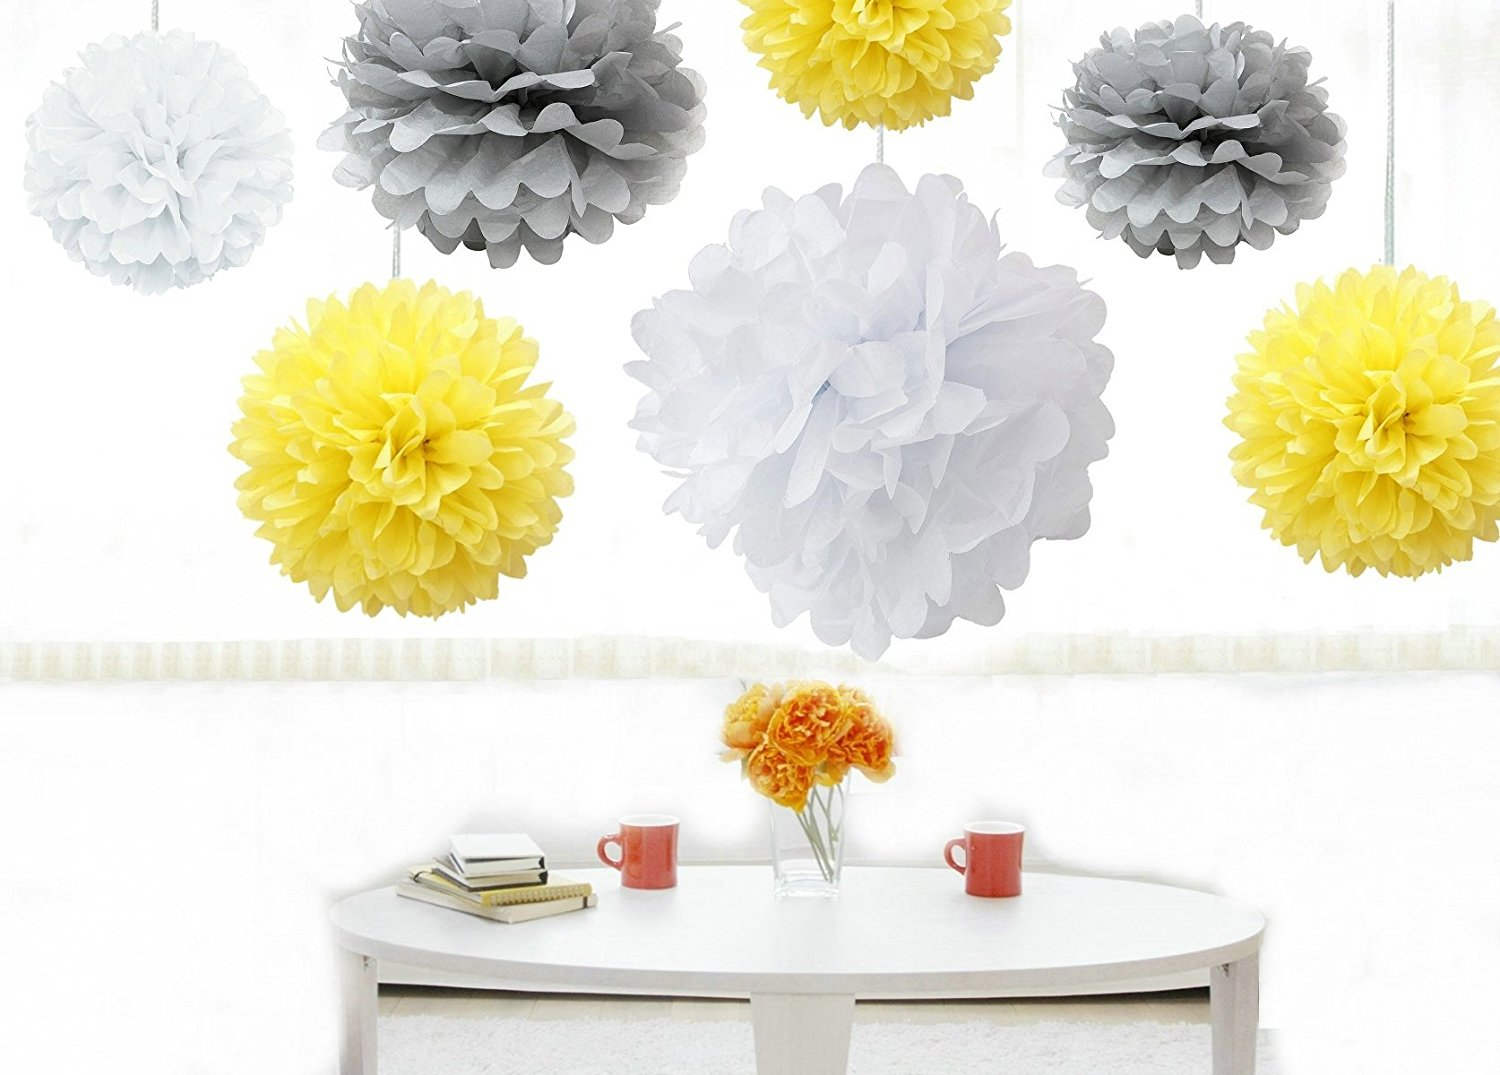 Buy kubert pom poms 18 pcs tissue paper flowers white yellow kubert pom poms 18 pcs tissue paper flowerswhite yellow silver 3 sizestissue paper pom pomsbest mothers day decorationwedding decorparty decor mightylinksfo